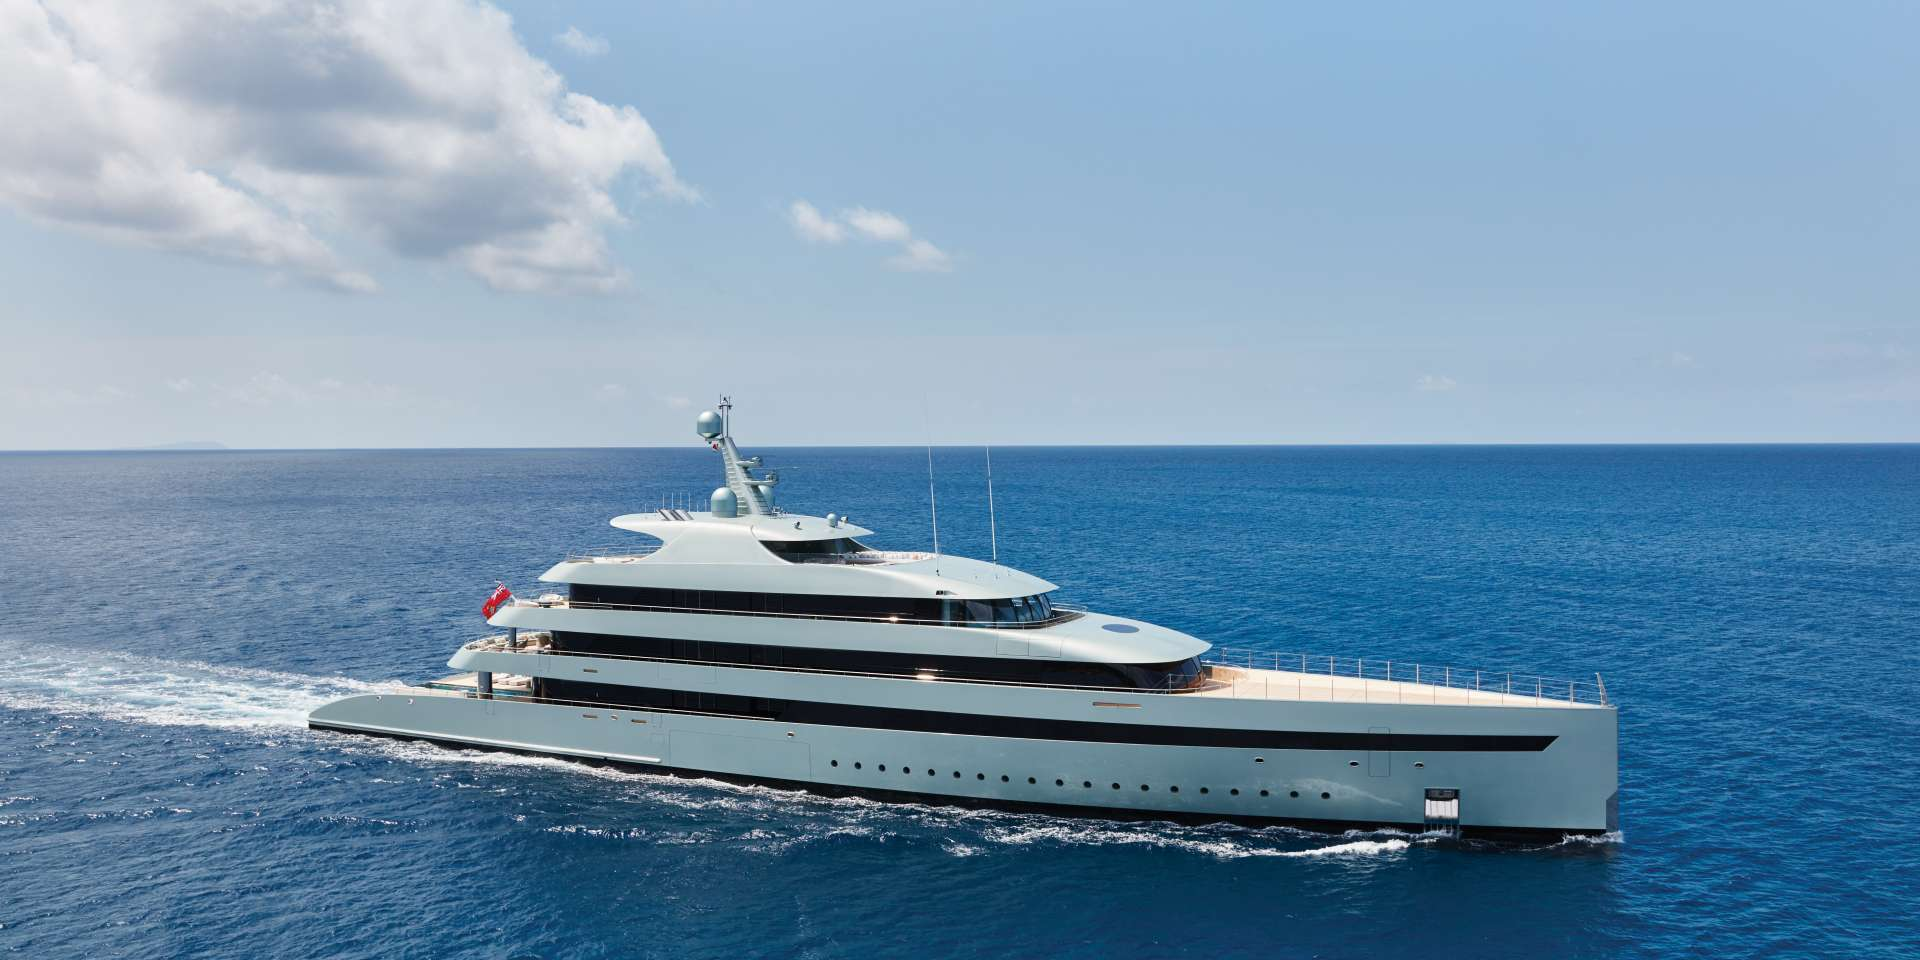 Savannah Feadship Royal Dutch Shipyards